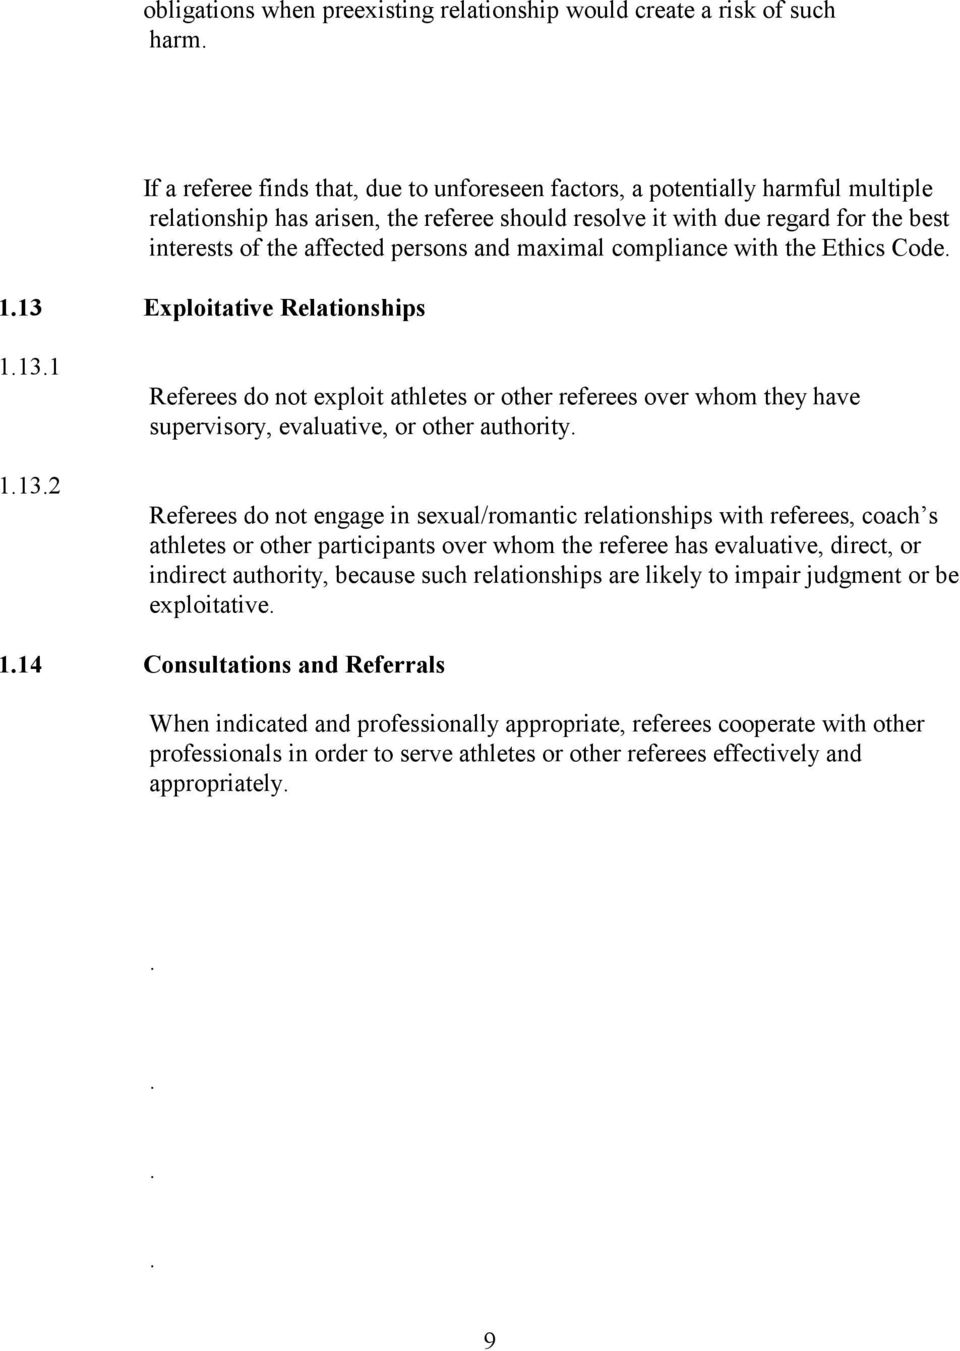 persons and maximal compliance with the Ethics Code. 1.13 Exploitative Relationships 1.13.1 1.13.2 Referees do not exploit athletes or other referees over whom they have supervisory, evaluative, or other authority.